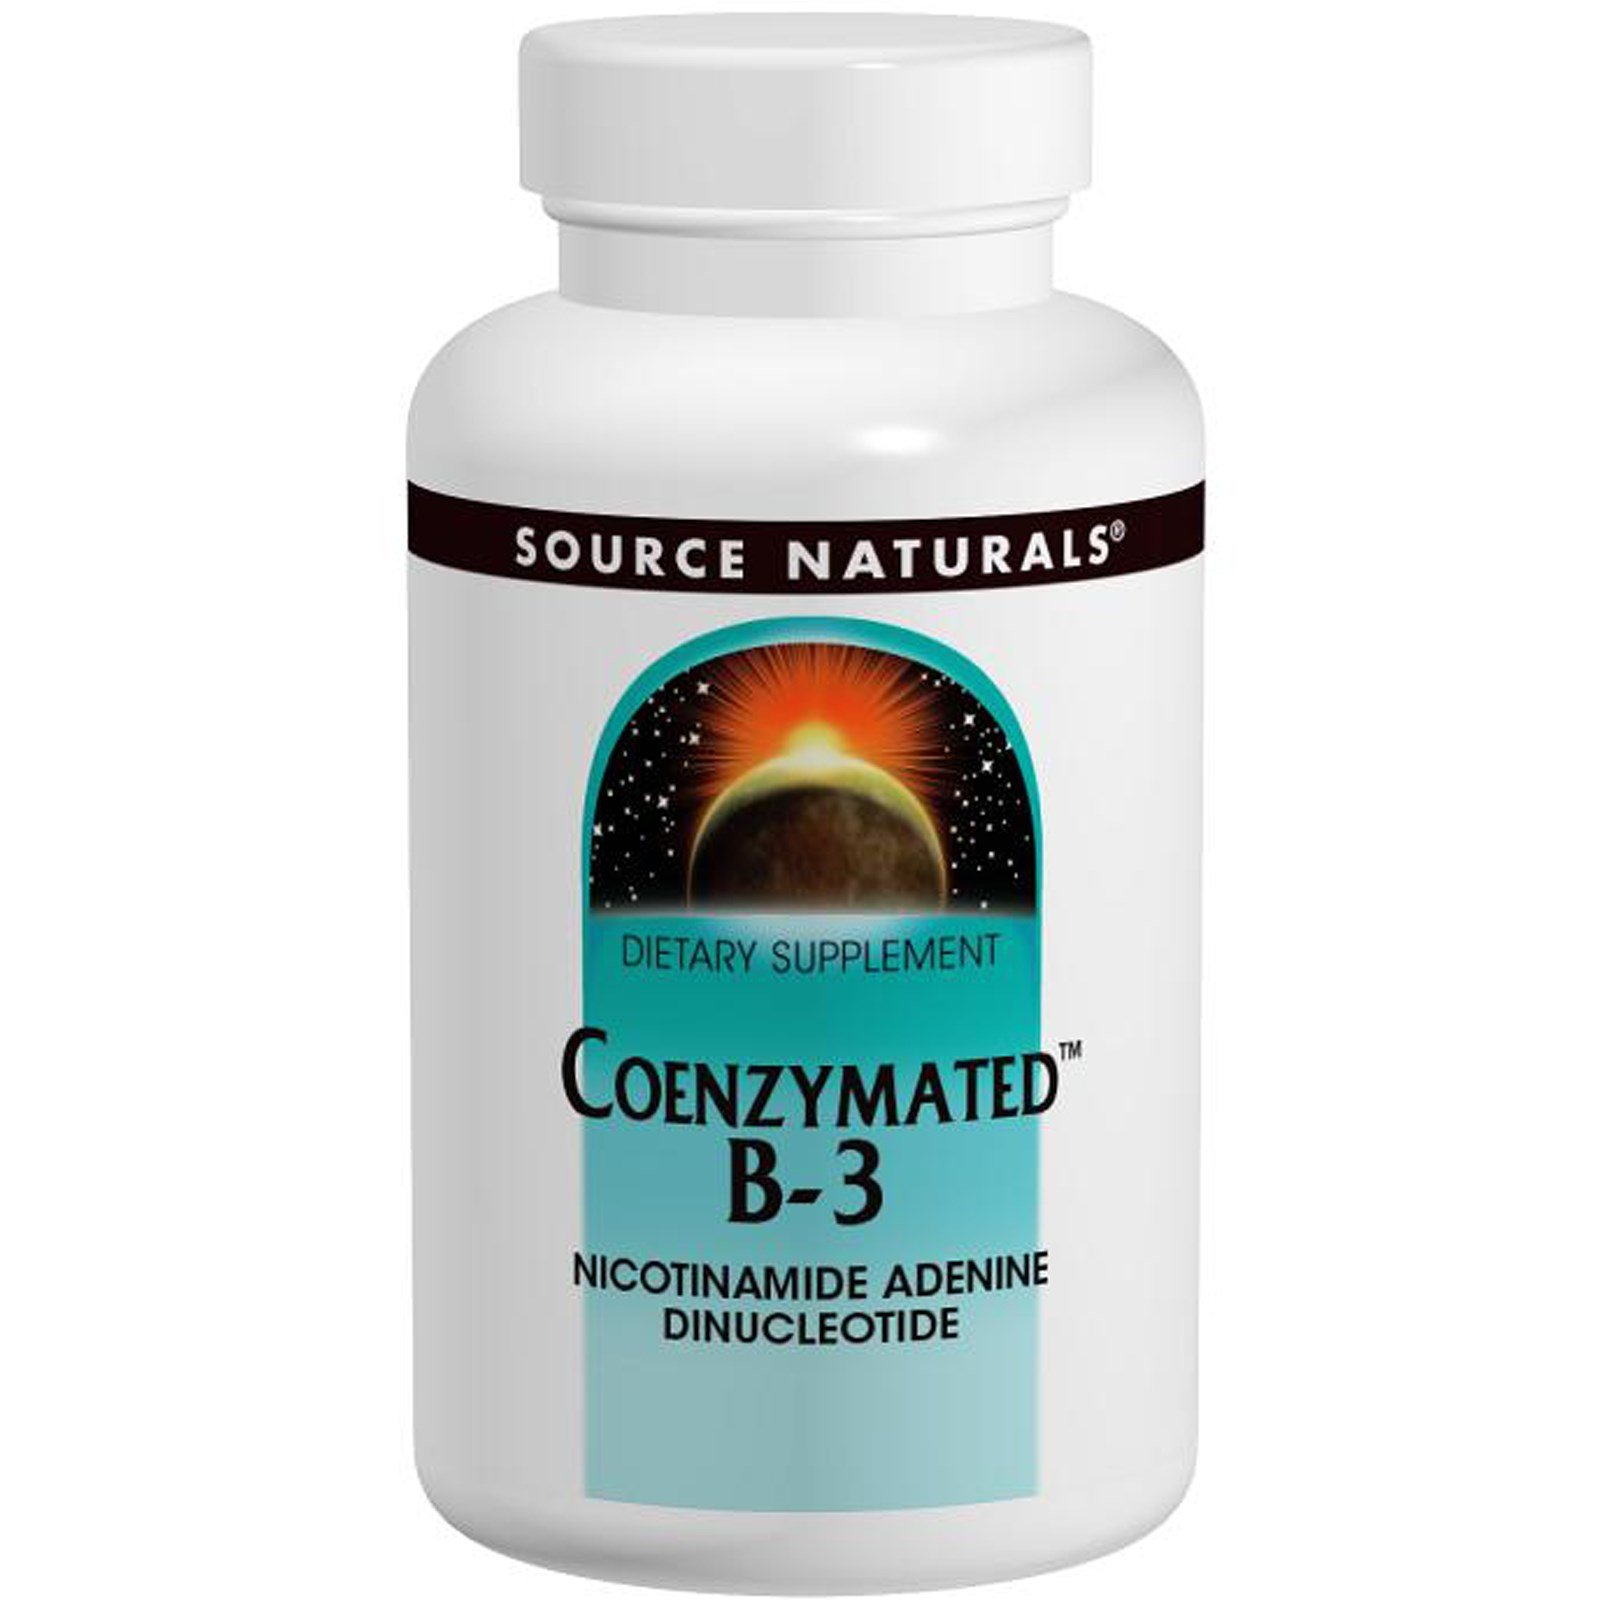 Source Naturals Coenzymated B-3 25mg Nicotinamide Adenine Dinucleotide - 60 Tablets (Pack of 6)